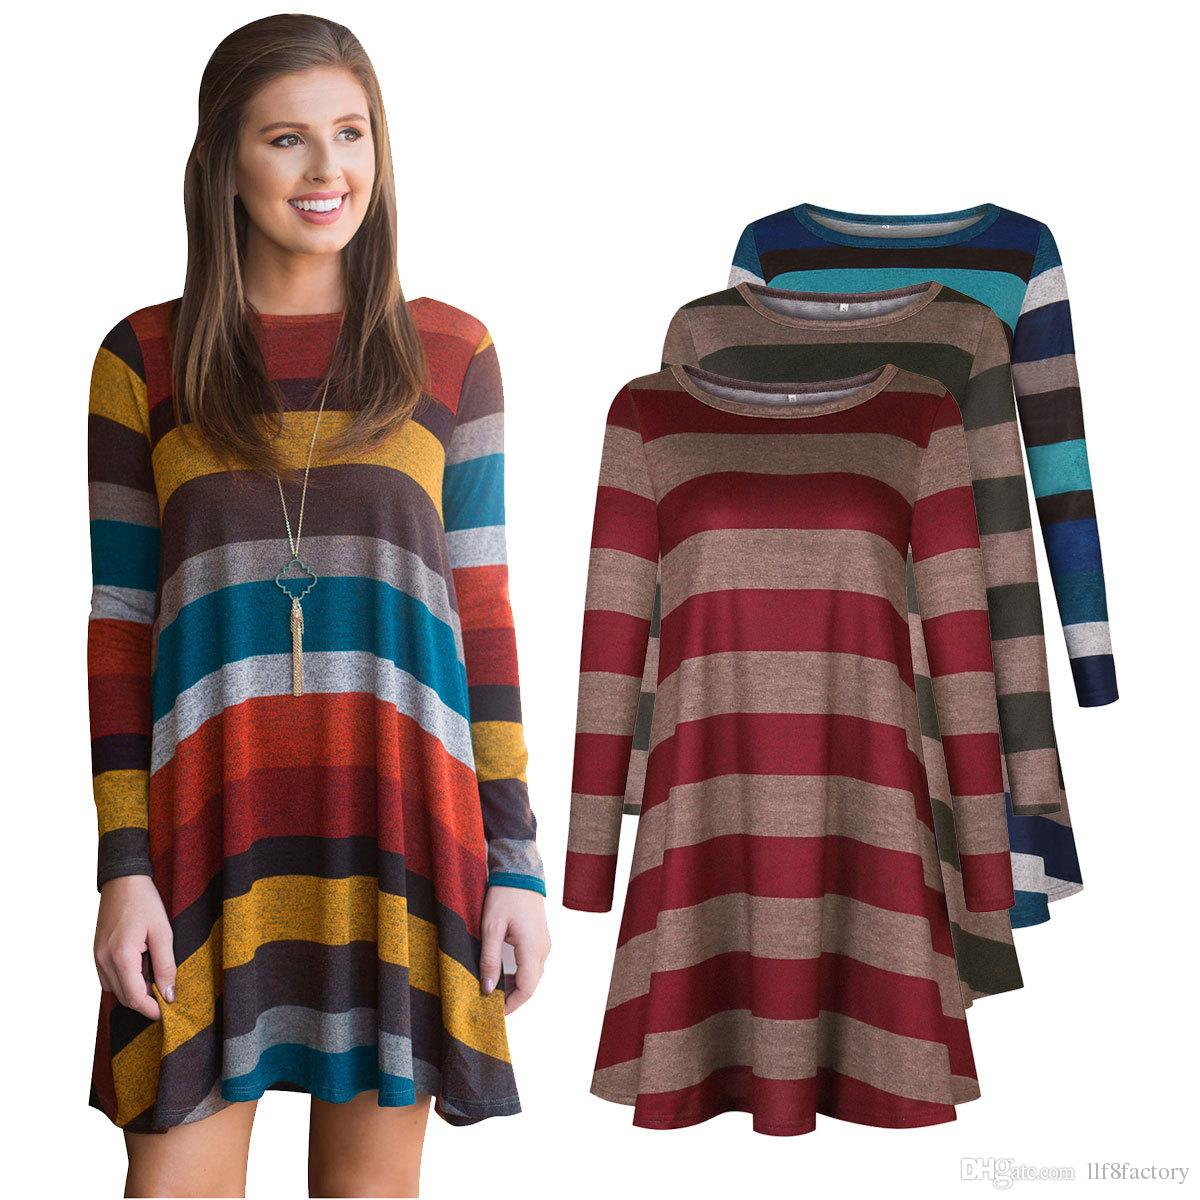 56ad9b078be New Casual Women S Autumn Classic Striped Design Long Sleeved Simple T Shirt  European And American Loose Wild Dress For All Occasions Casual White  Summer ...